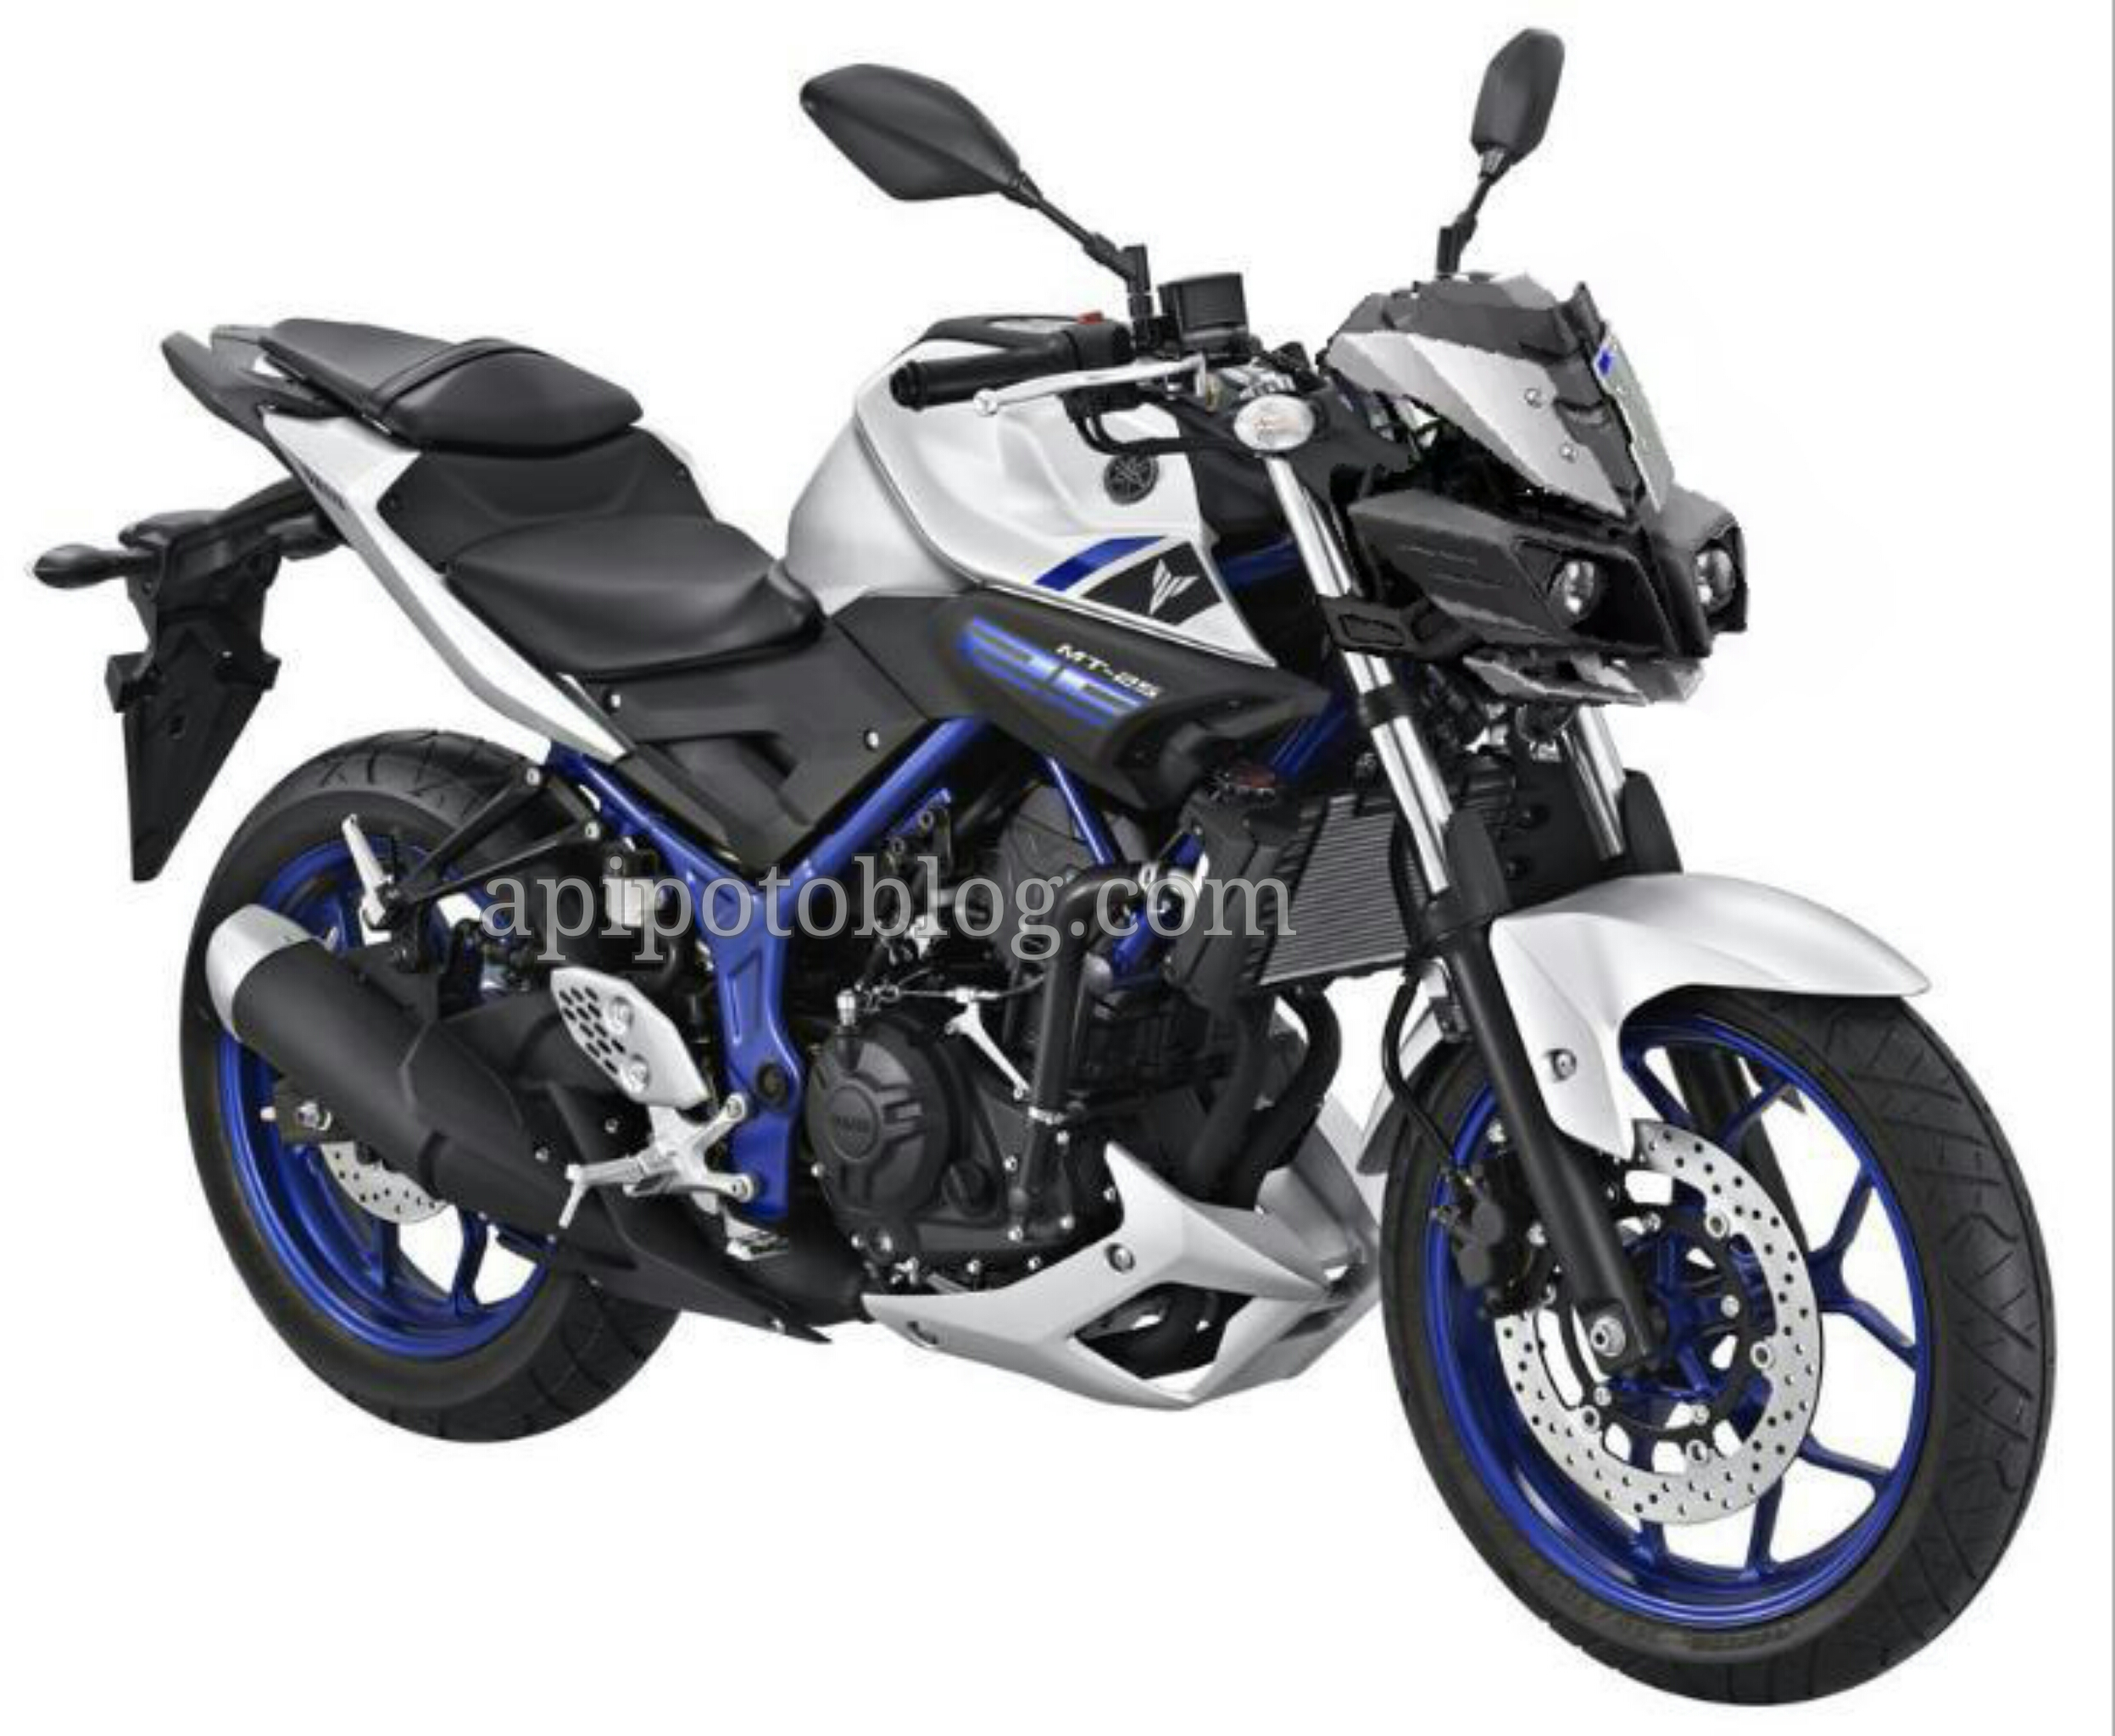 gambaran modifikasi yamaha mt 25 headlamp mt 10 mantap nih. Black Bedroom Furniture Sets. Home Design Ideas